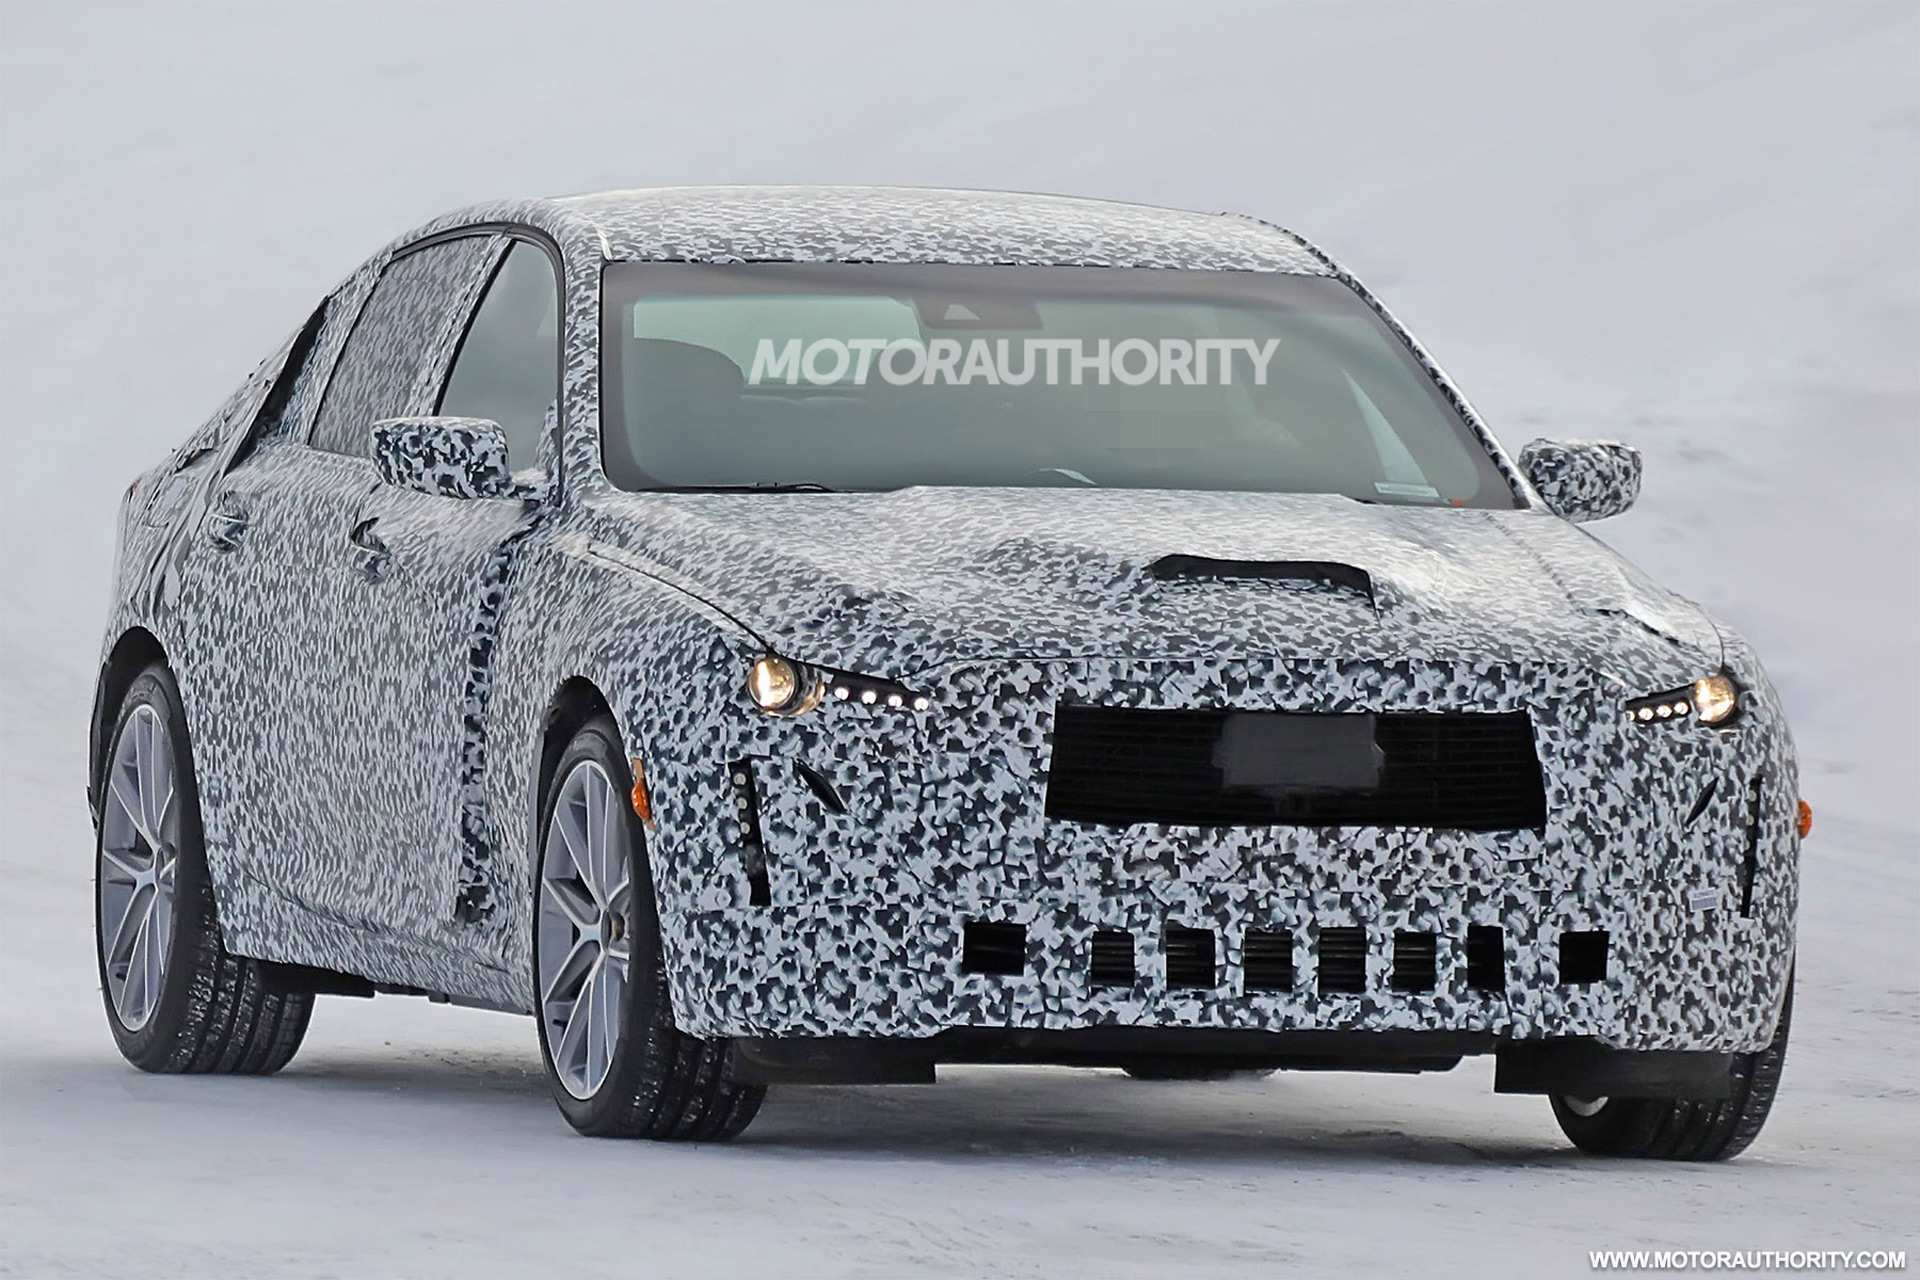 47 All New Cadillac Spy Shots Price and Review with Cadillac Spy Shots